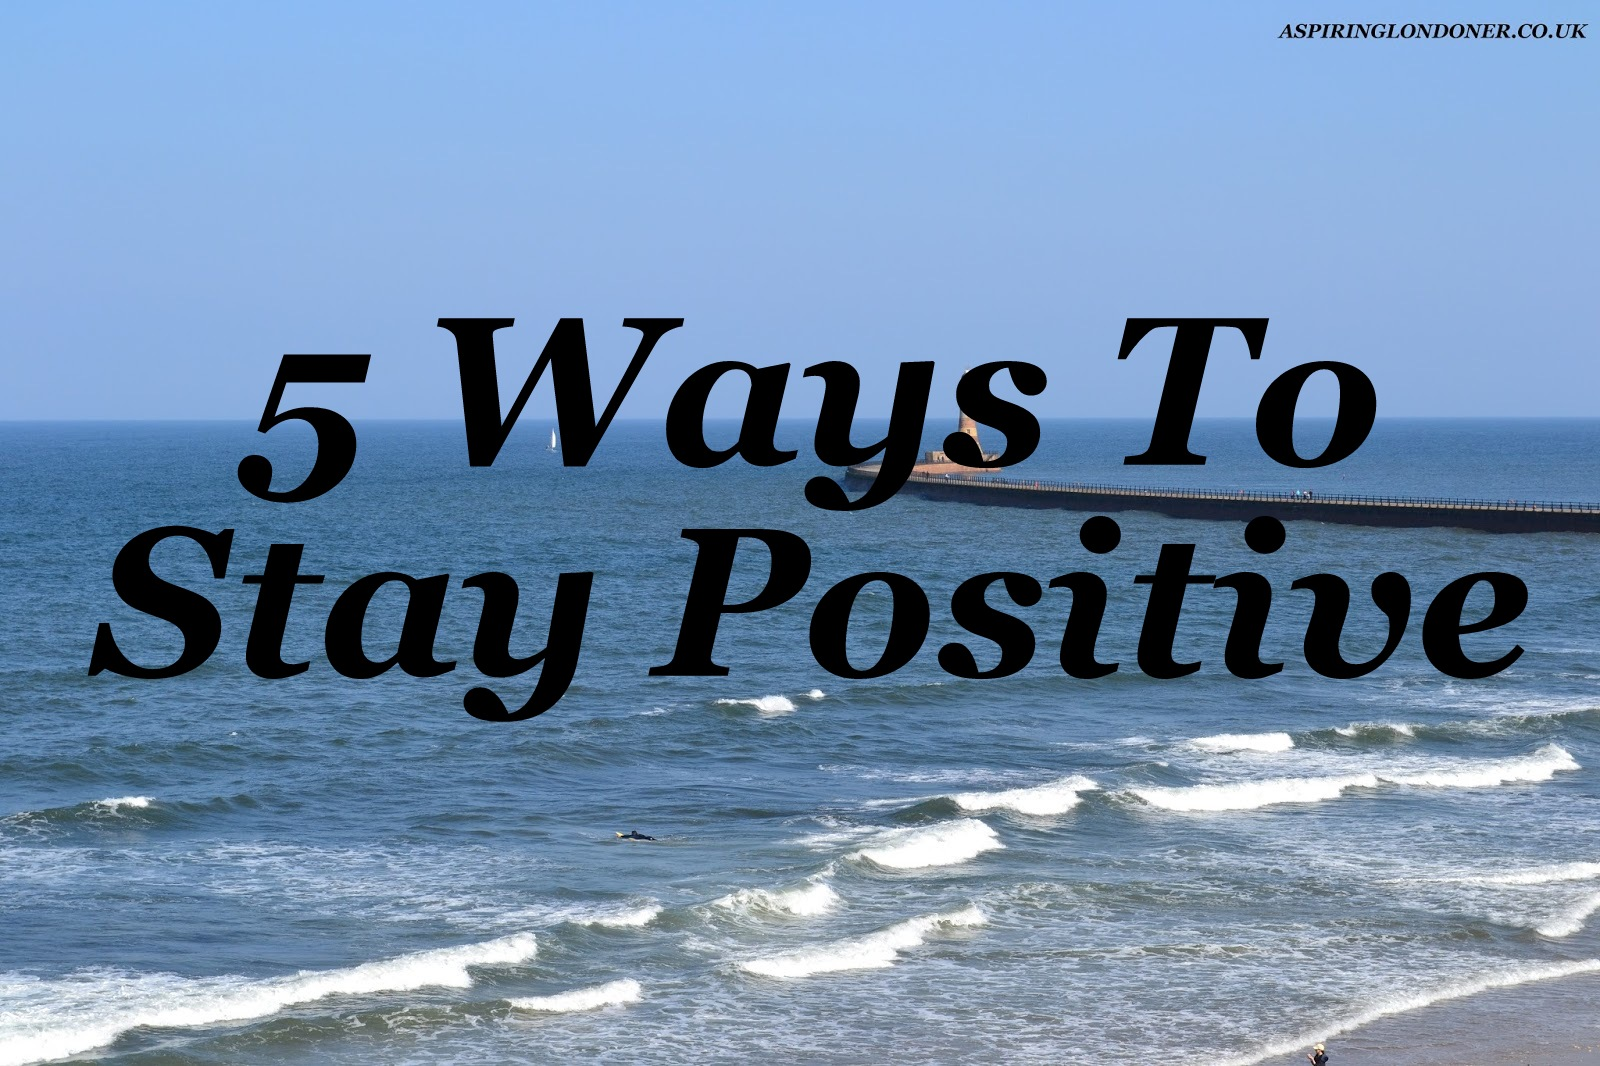 Five Ways To Stay Positive - Aspiring Londoner